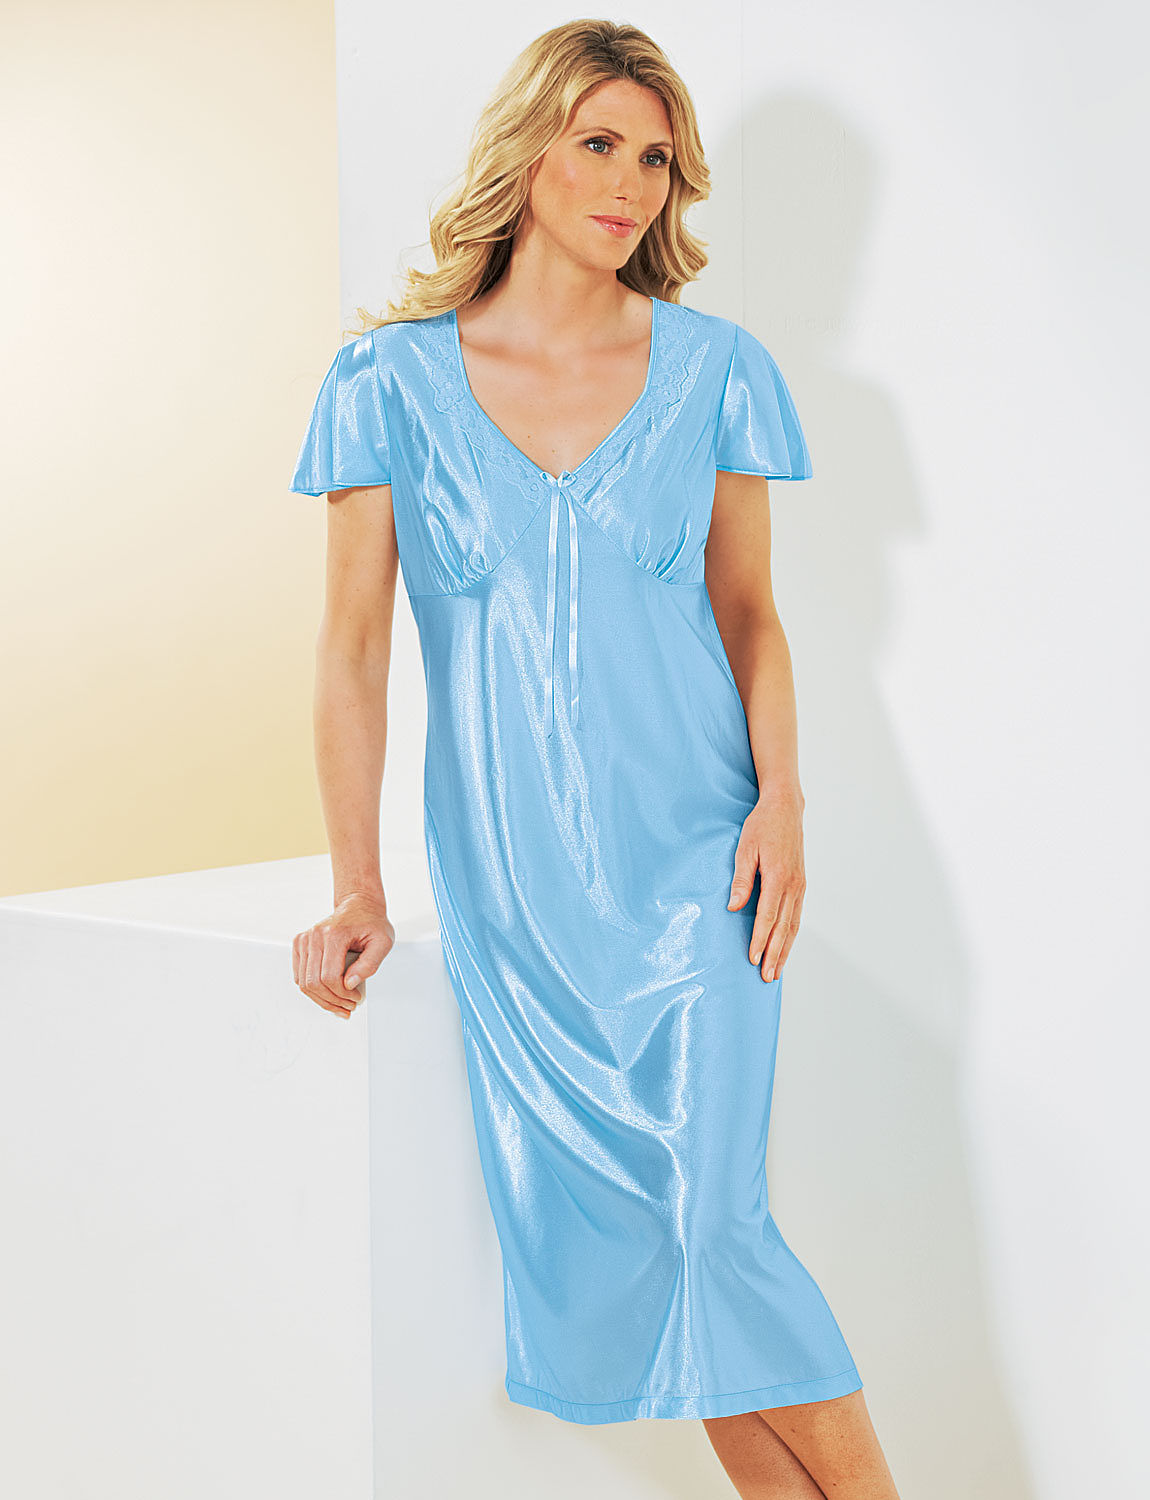 Pack Of 2 Satin Short Sleeve Nightdresses Ladieswear